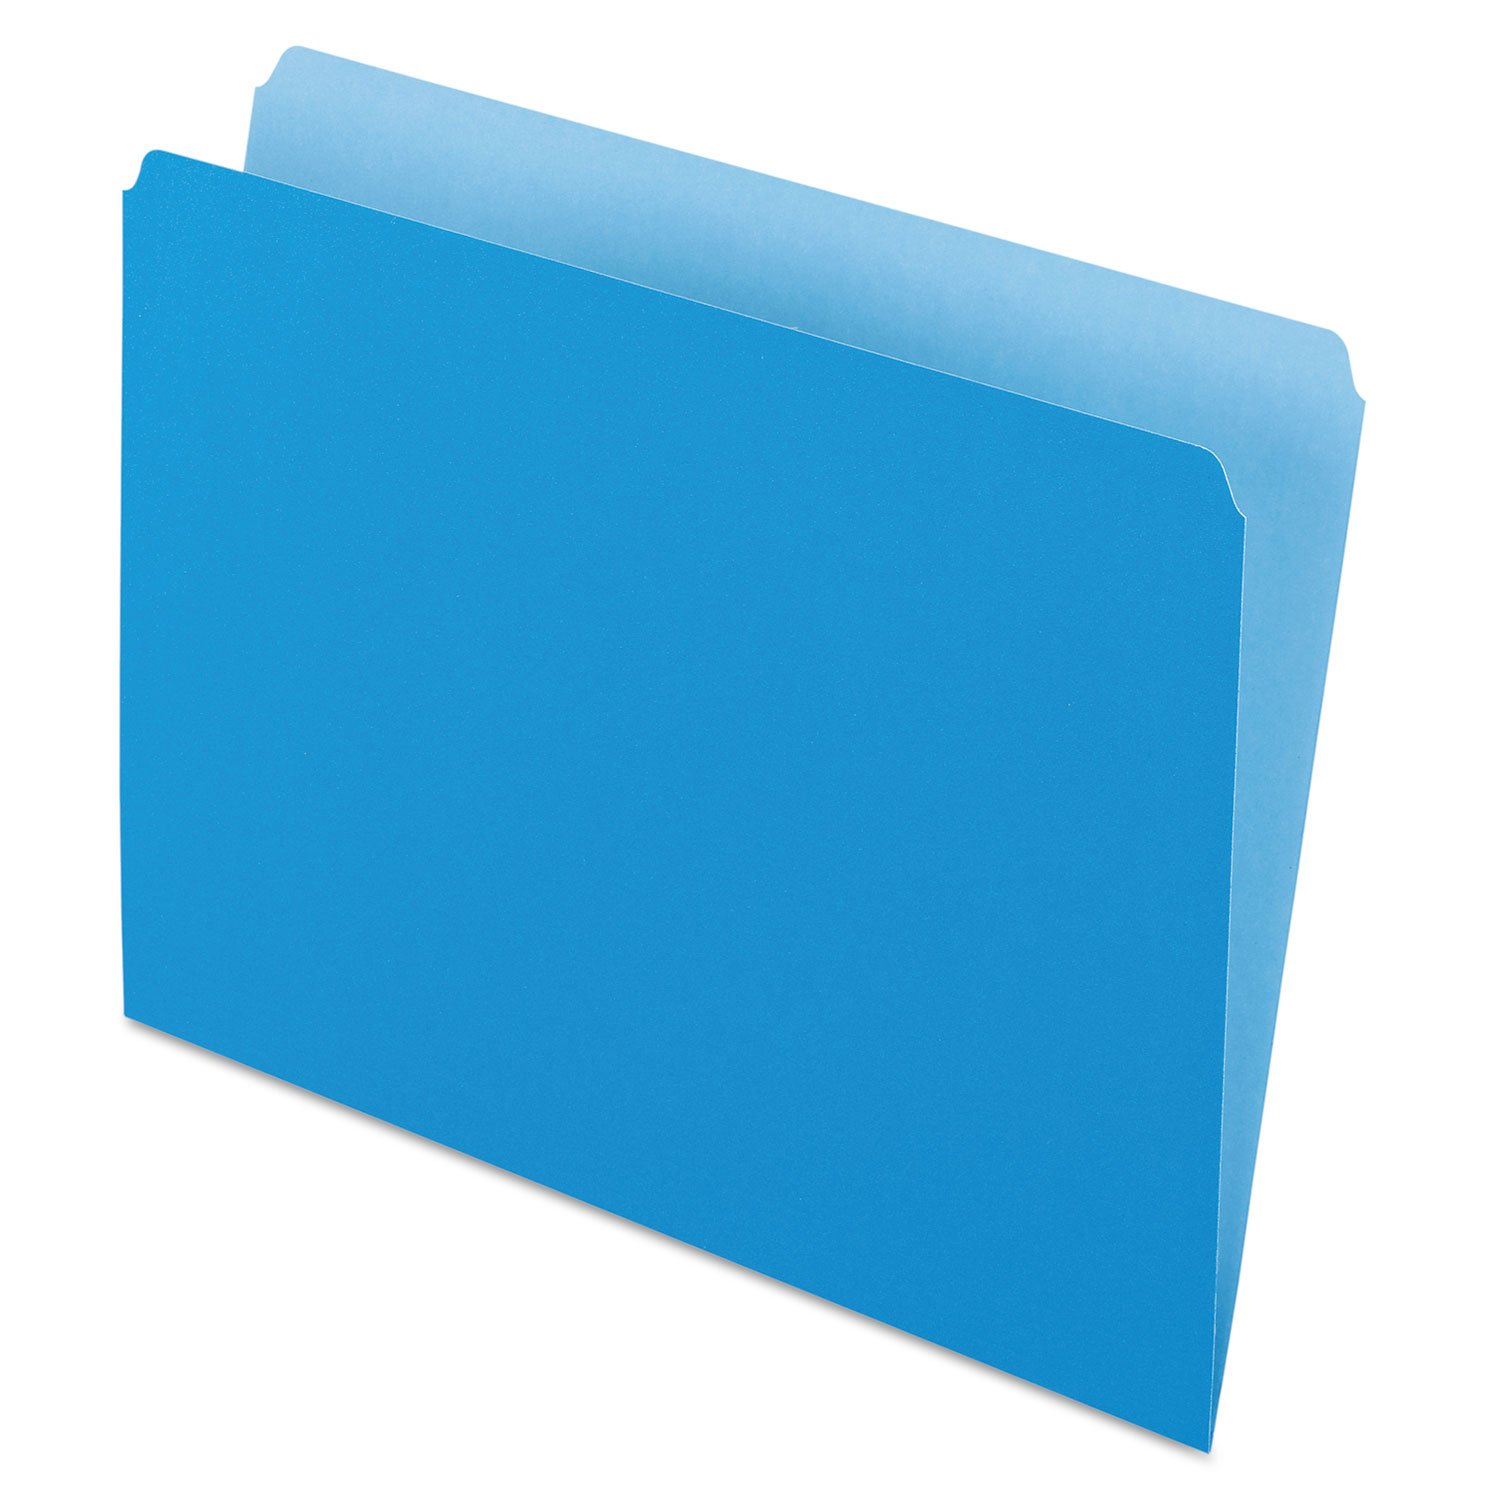 Pendaflex 152BLU Colored File Folders, Straight Cut, Top Tab, Letter, Blue/Light Blue, 100/Box